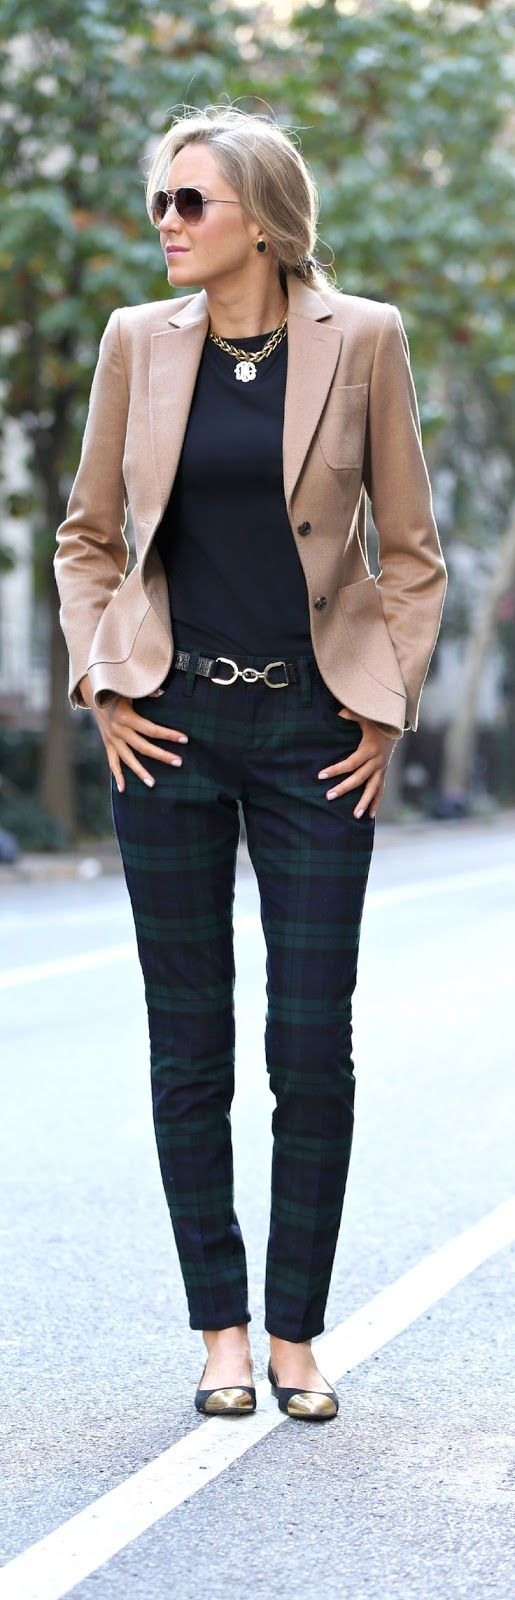 Office look | Tartan pants, flats, golden accessories and camel blazer